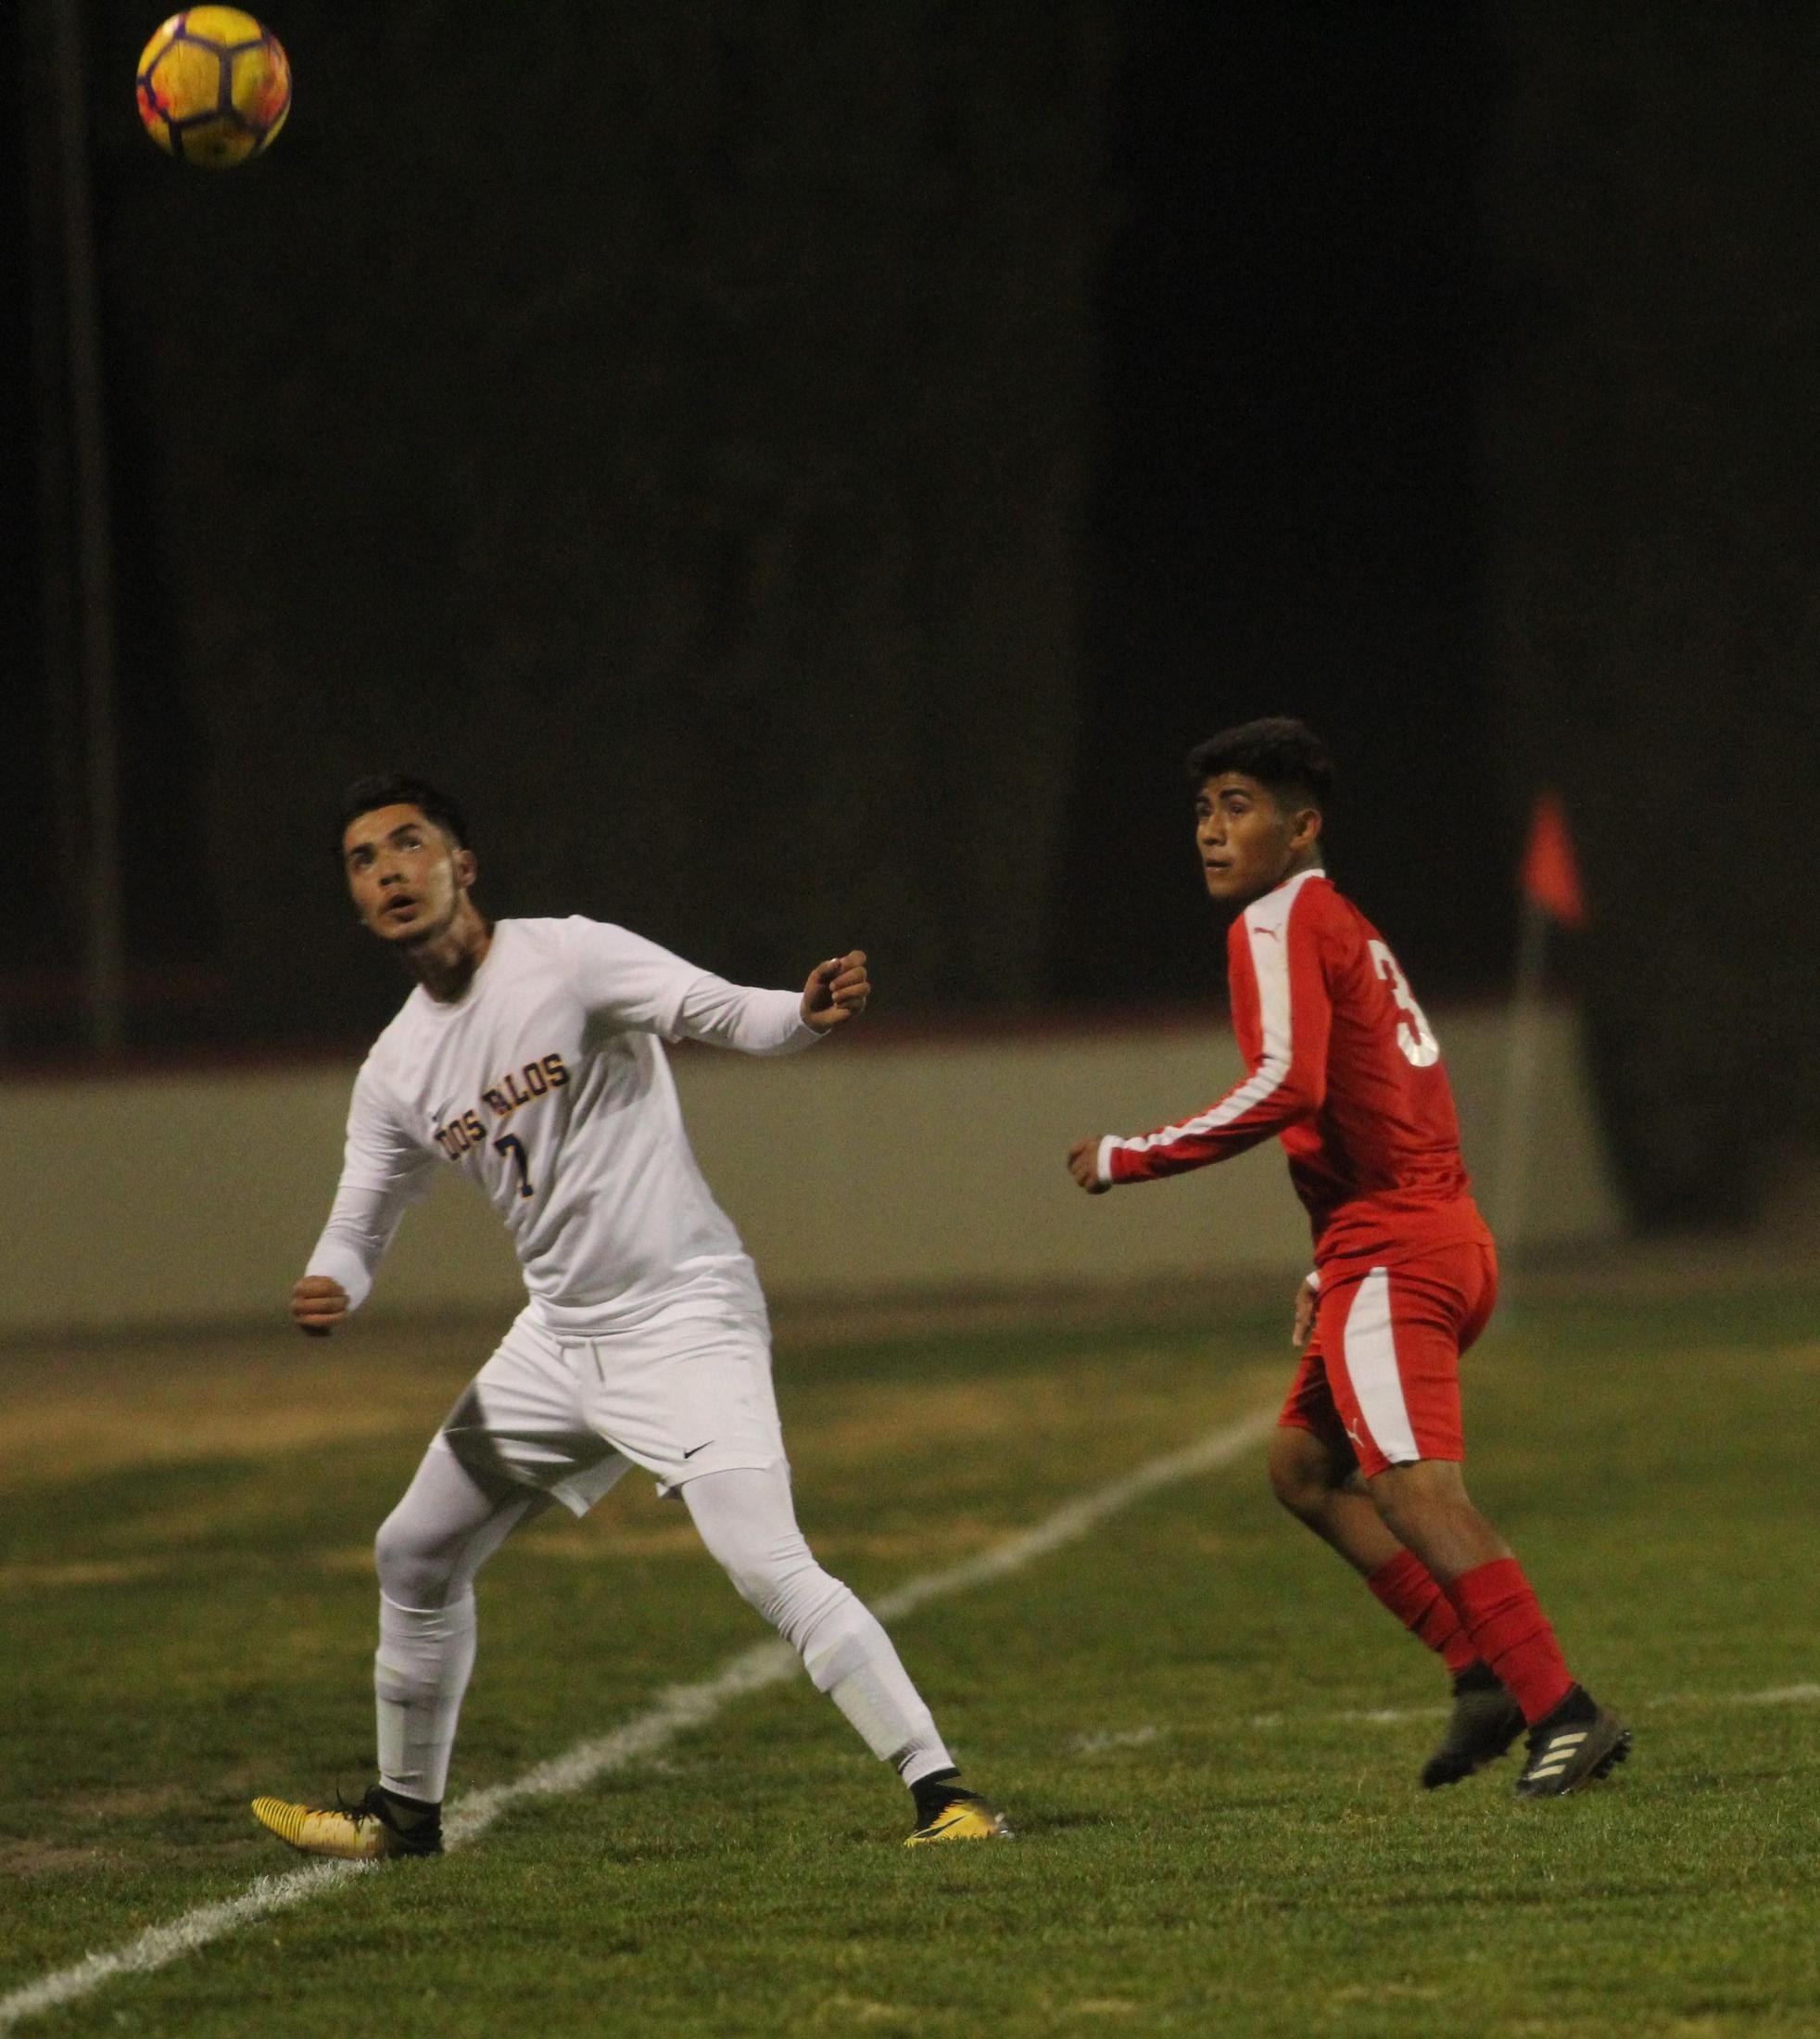 Alejandro Montes Looking up at the Ball